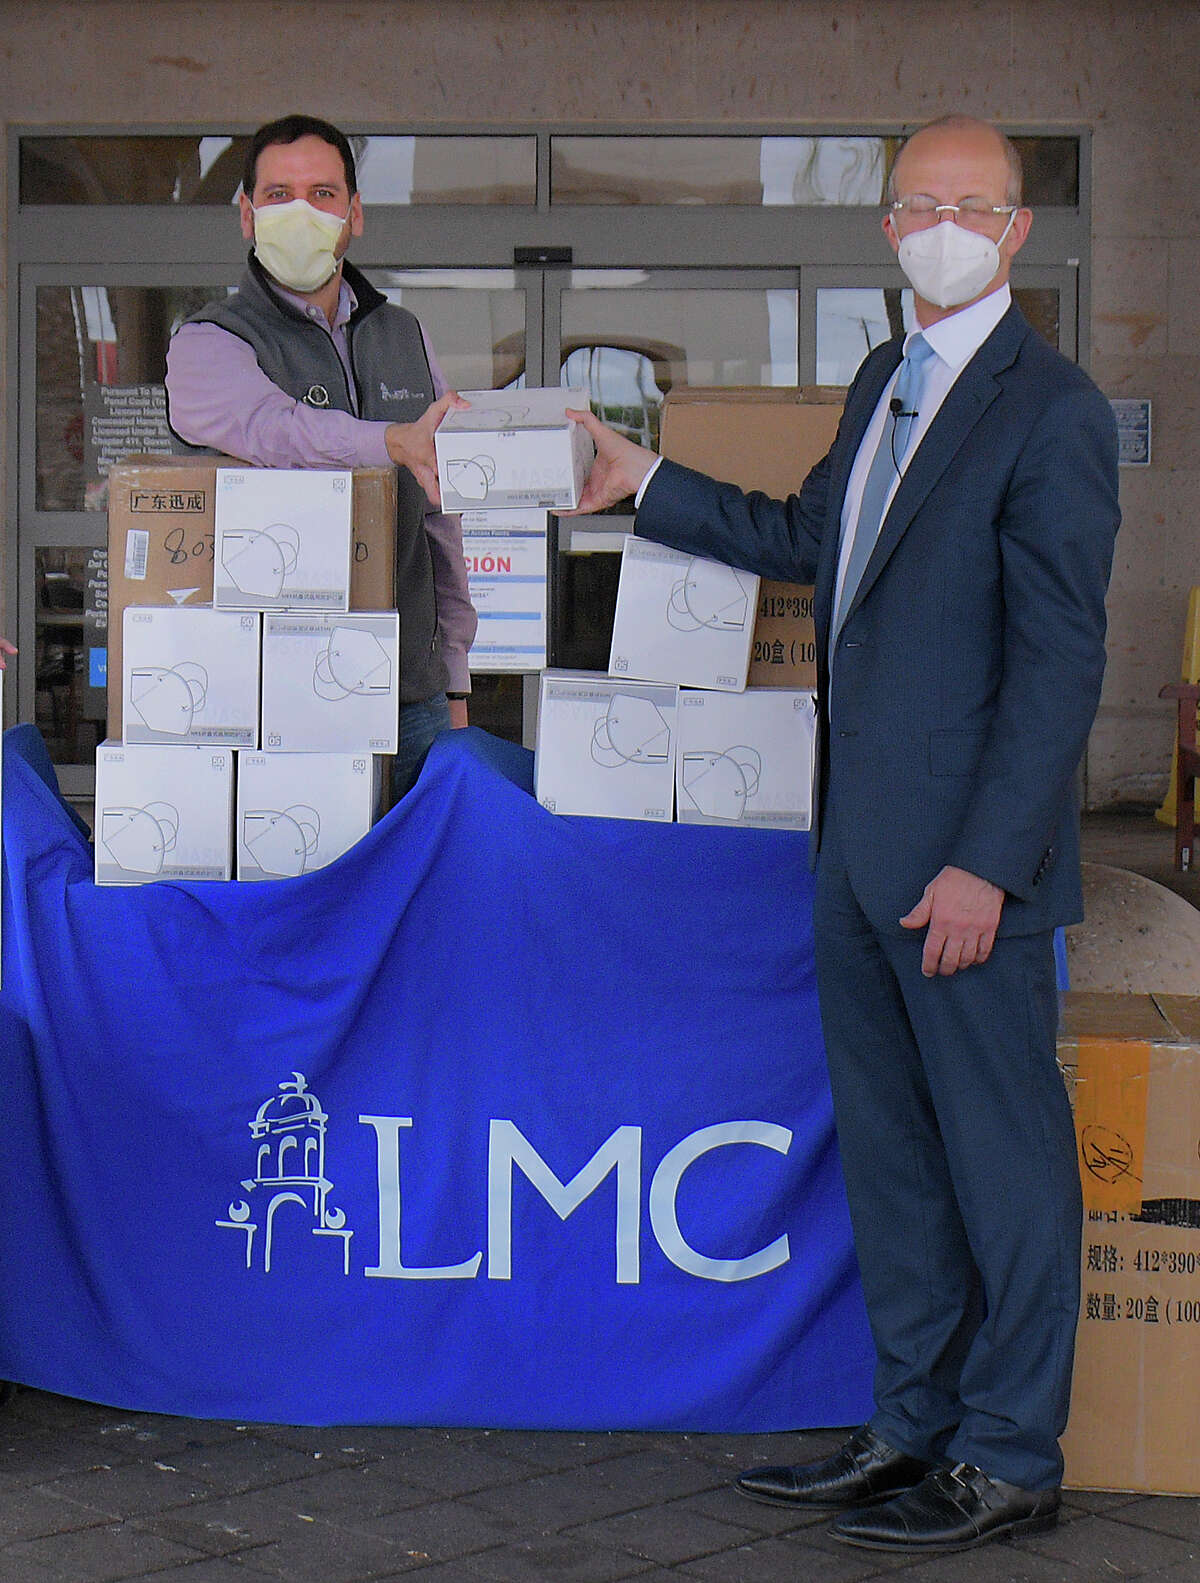 In an effort to help the medical staff at Laredo Medical Centerand Doctors Hospital, Dr. Michael A. Hochman, right, donated 2,000 protective medical grade N-95 virus-resistant face masks to each of the centers, Friday, April 17, 2020. Accepting the donation for the Laredo Medical Center is Chief Operating Officer, Jorge Leal.